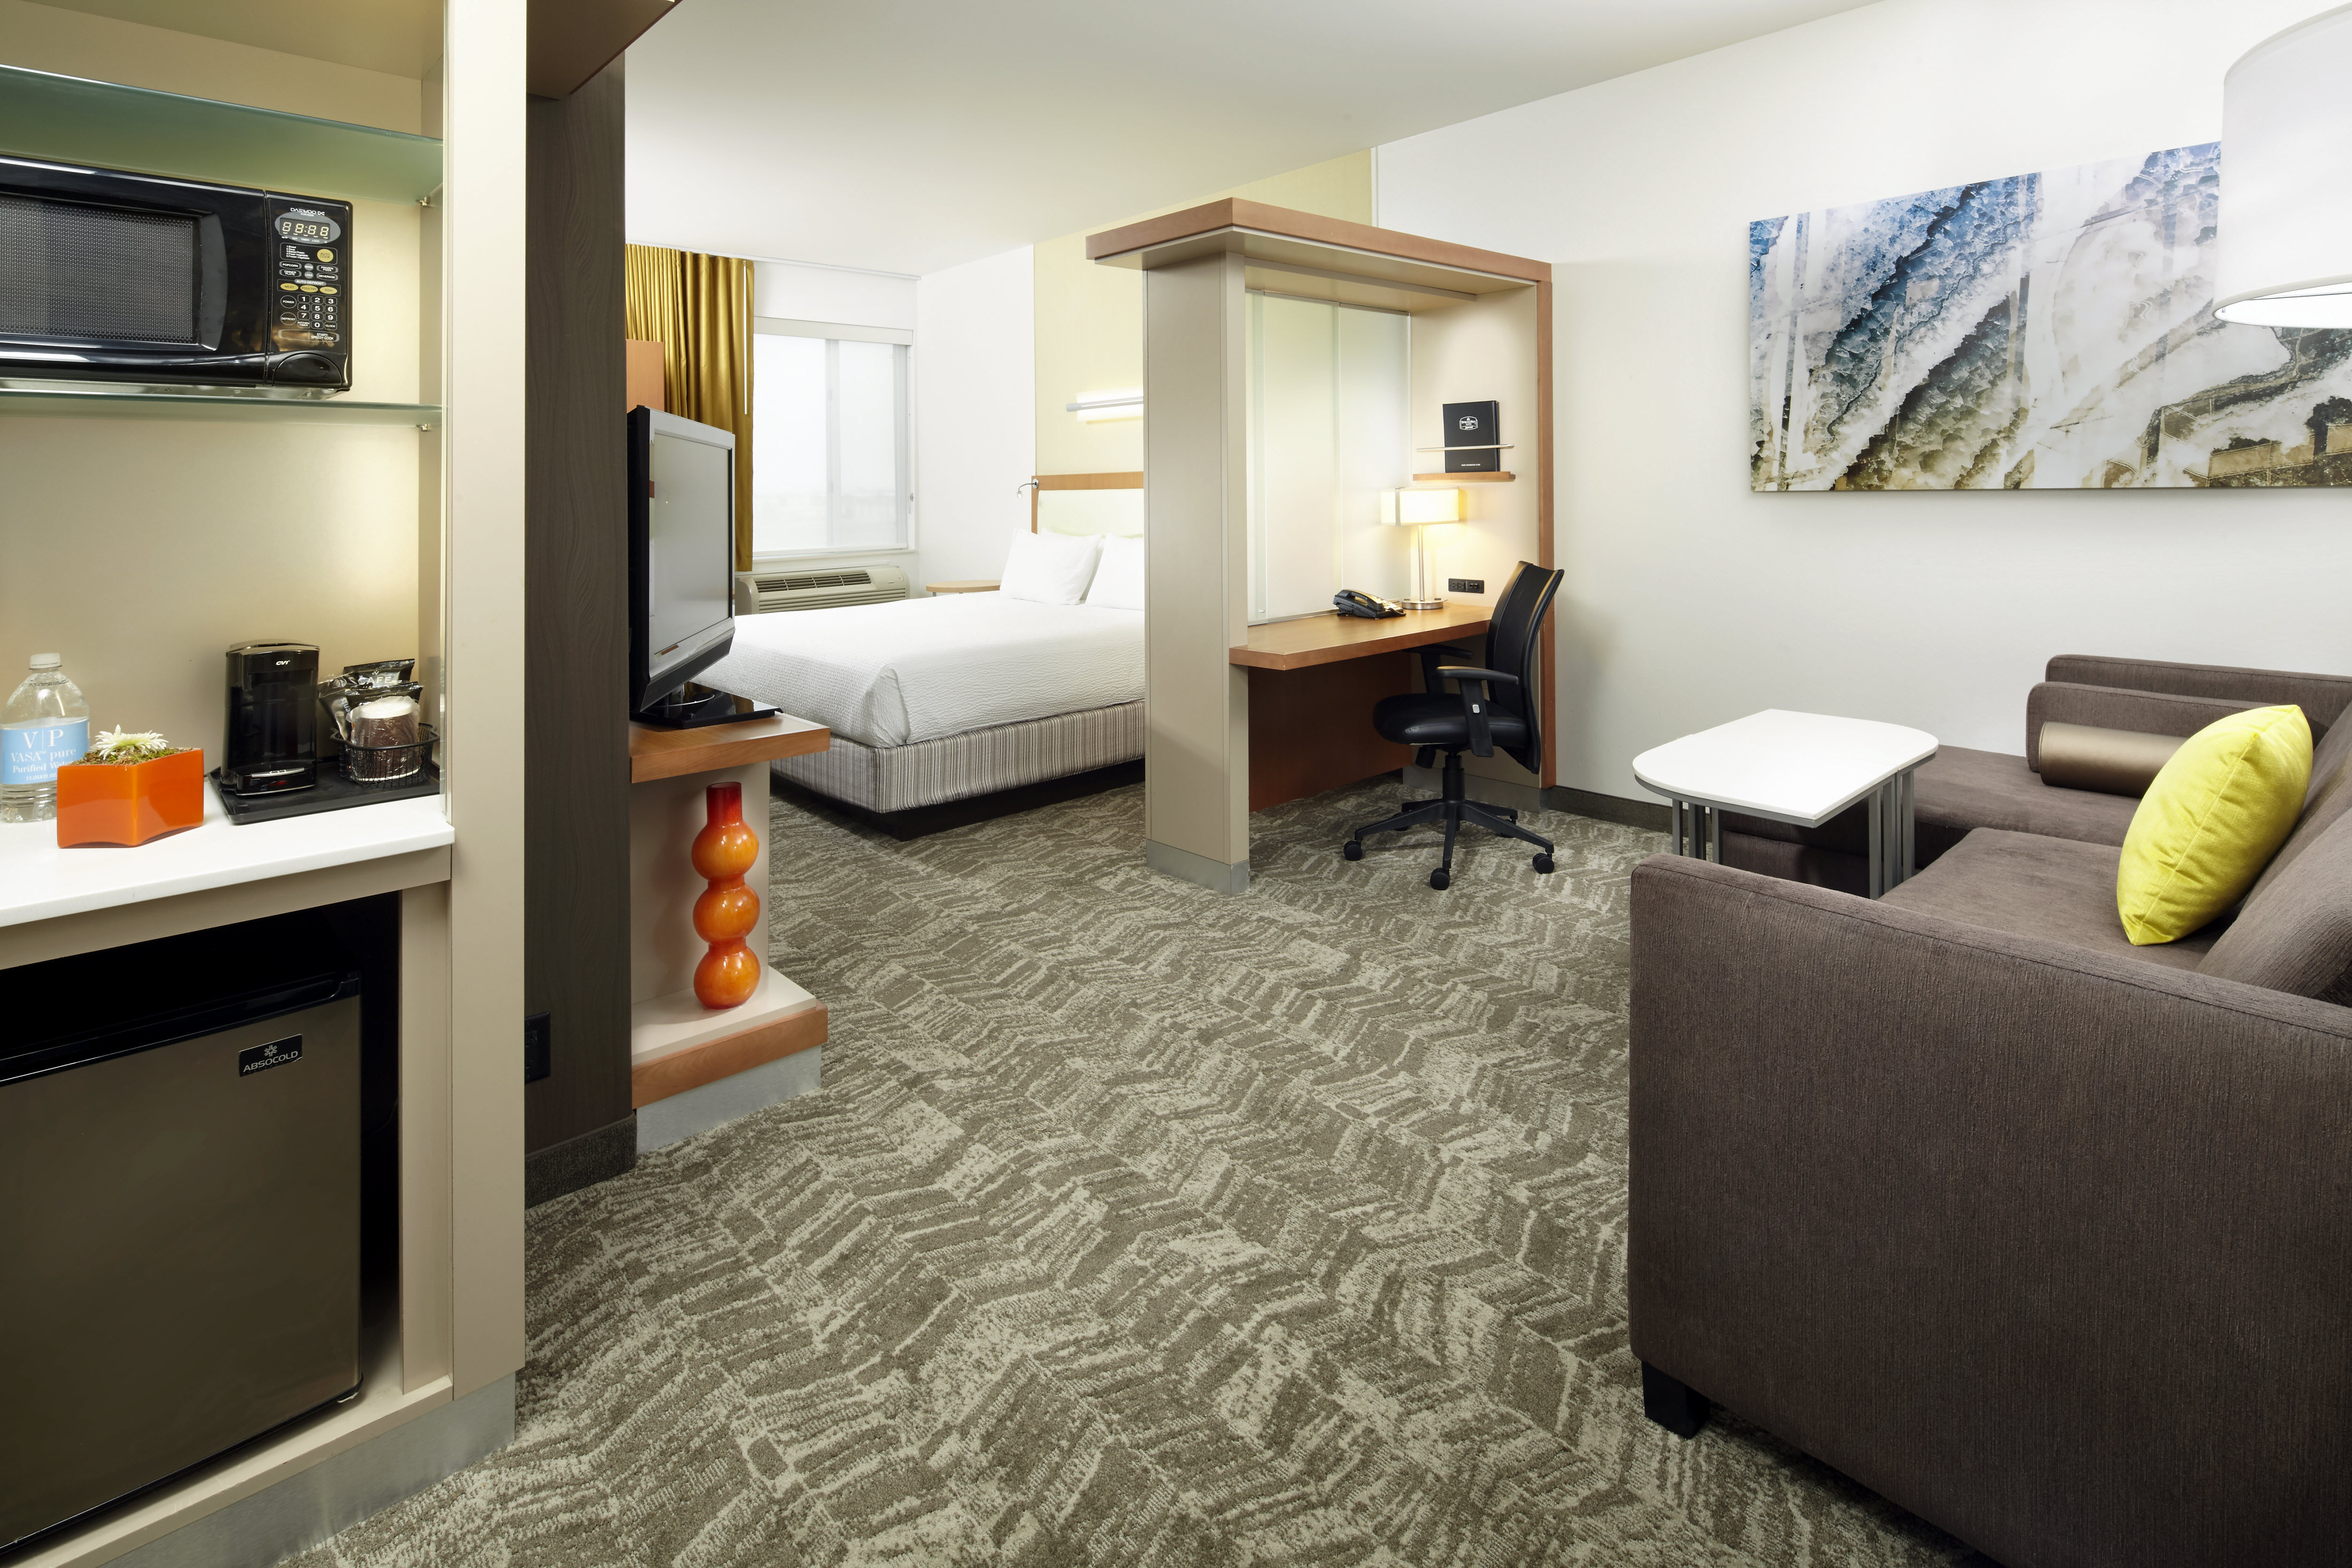 SpringHill Suites by Marriott Chicago Waukegan/Gurnee image 8